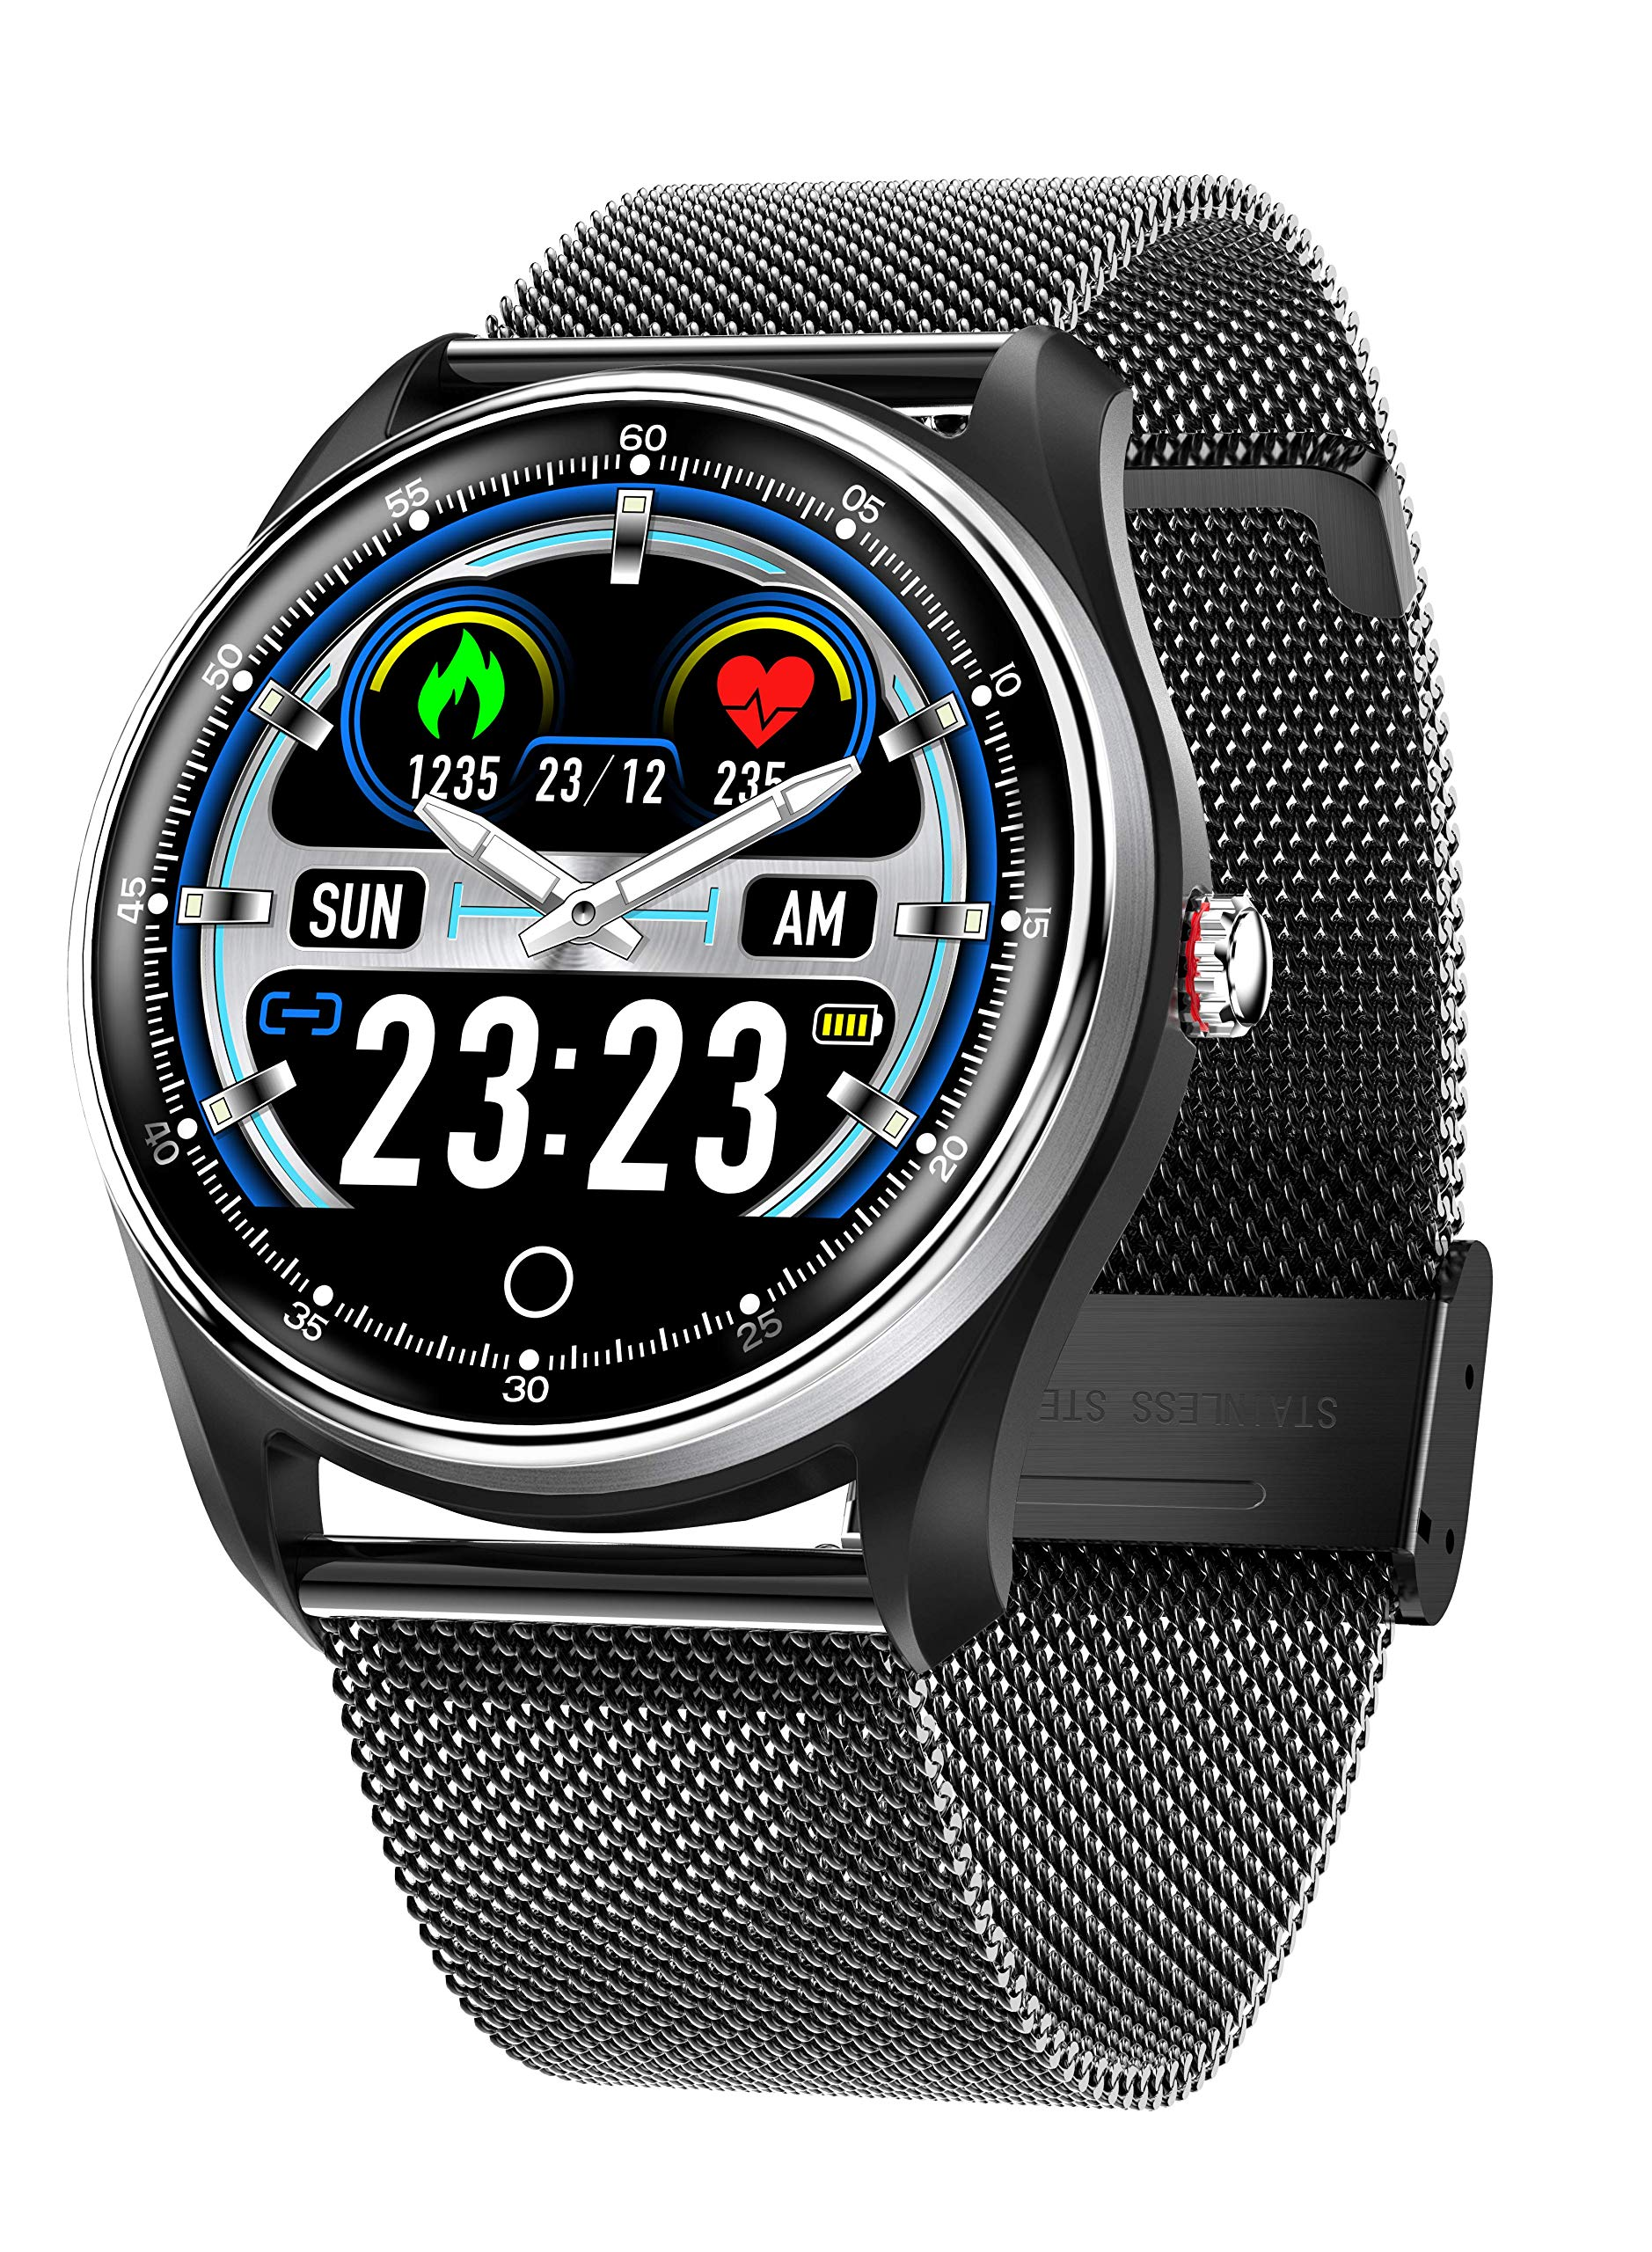 Byoung Sport Smart Watch for Men, Sleep Monitor Fitness Tracker IP68 Waterproof Smartwatch with ECG+PPG Heart Rate Blood Pressure 12 Sports Modes Pedometer, Calorie, Clock Alarm, Call SMS Reminder